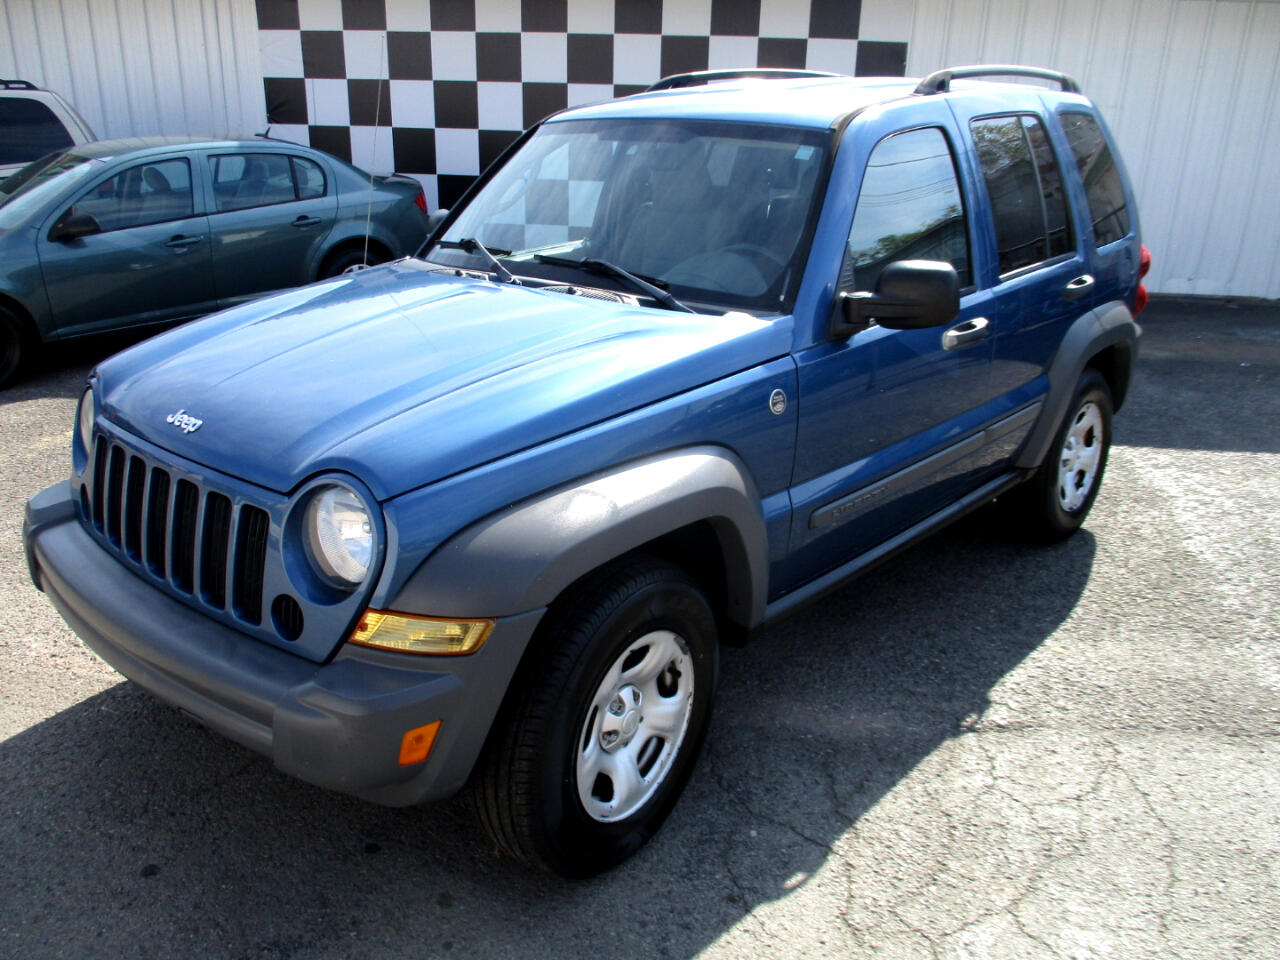 2005 Jeep Liberty 4dr Sport 4WD